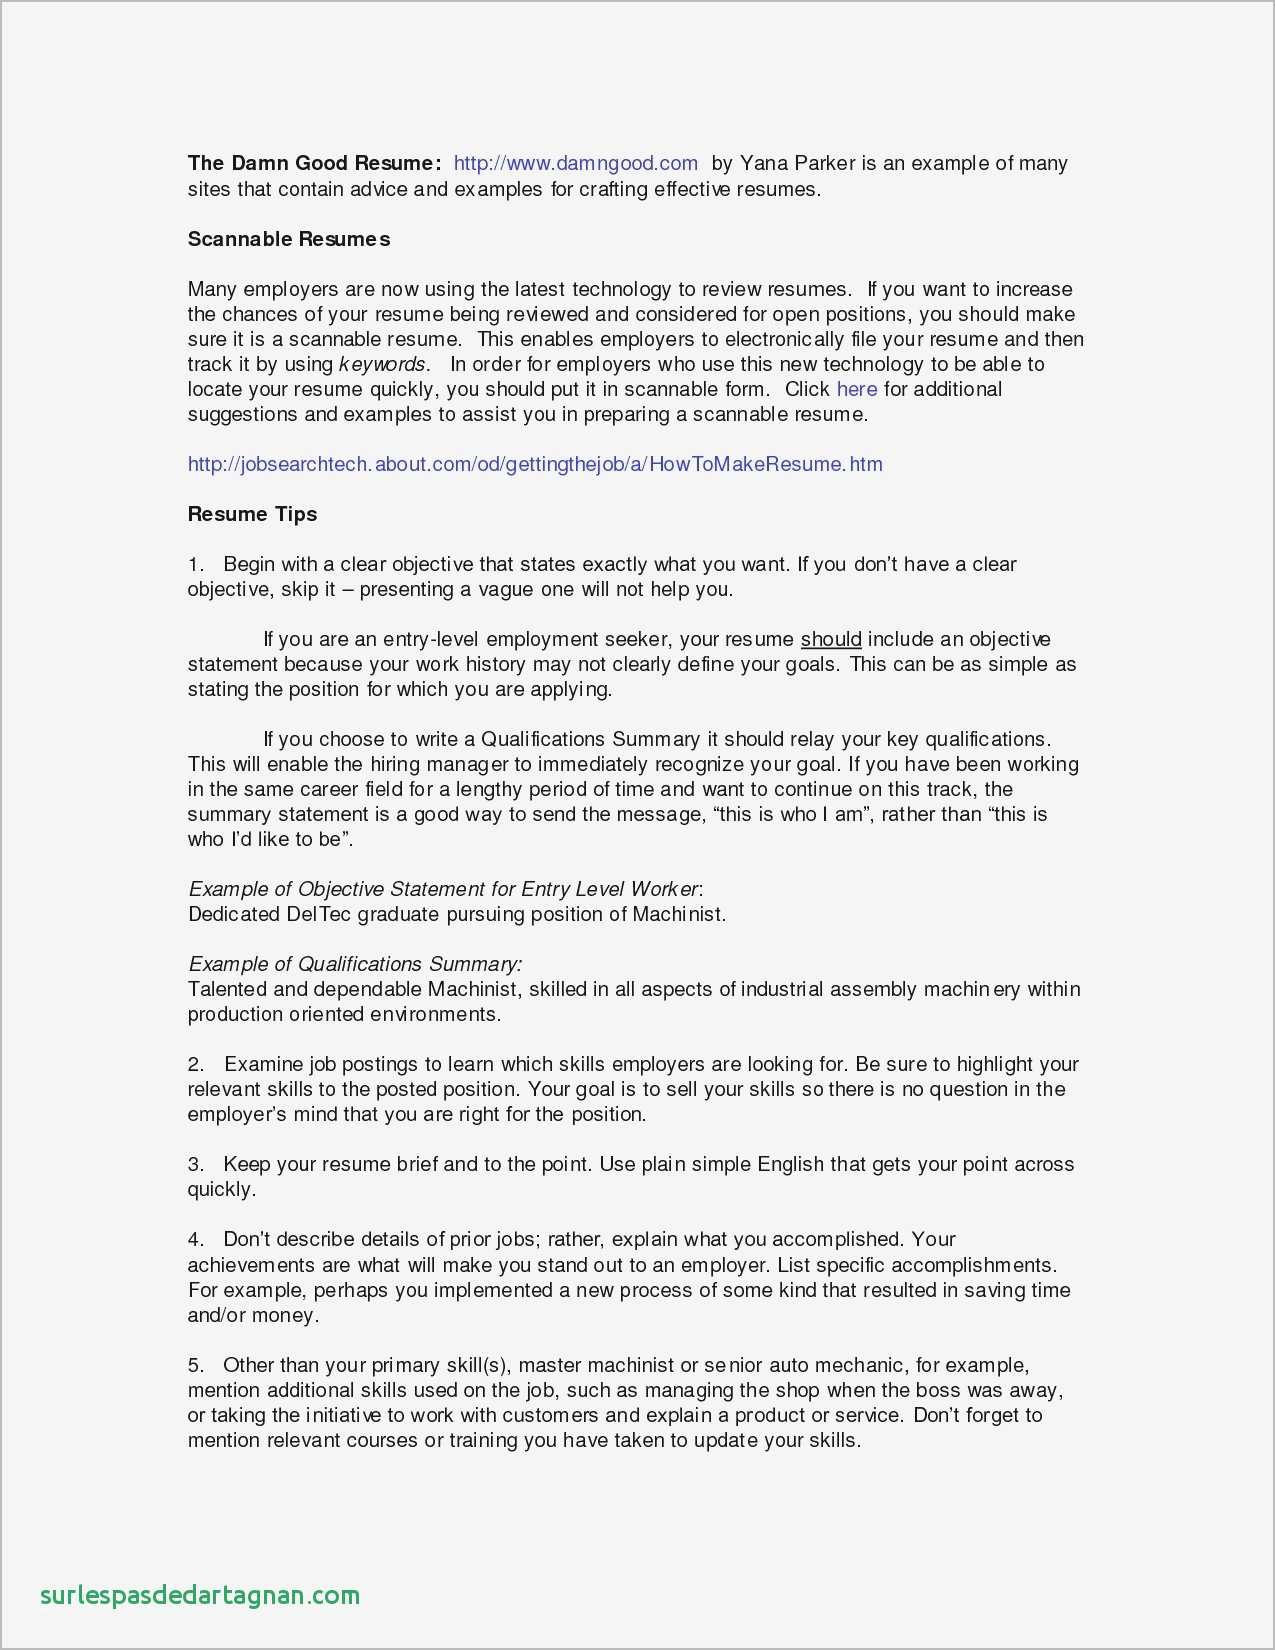 Graduate School Resume Examples - How to Write A Resume for Graduate School Popular School Resume